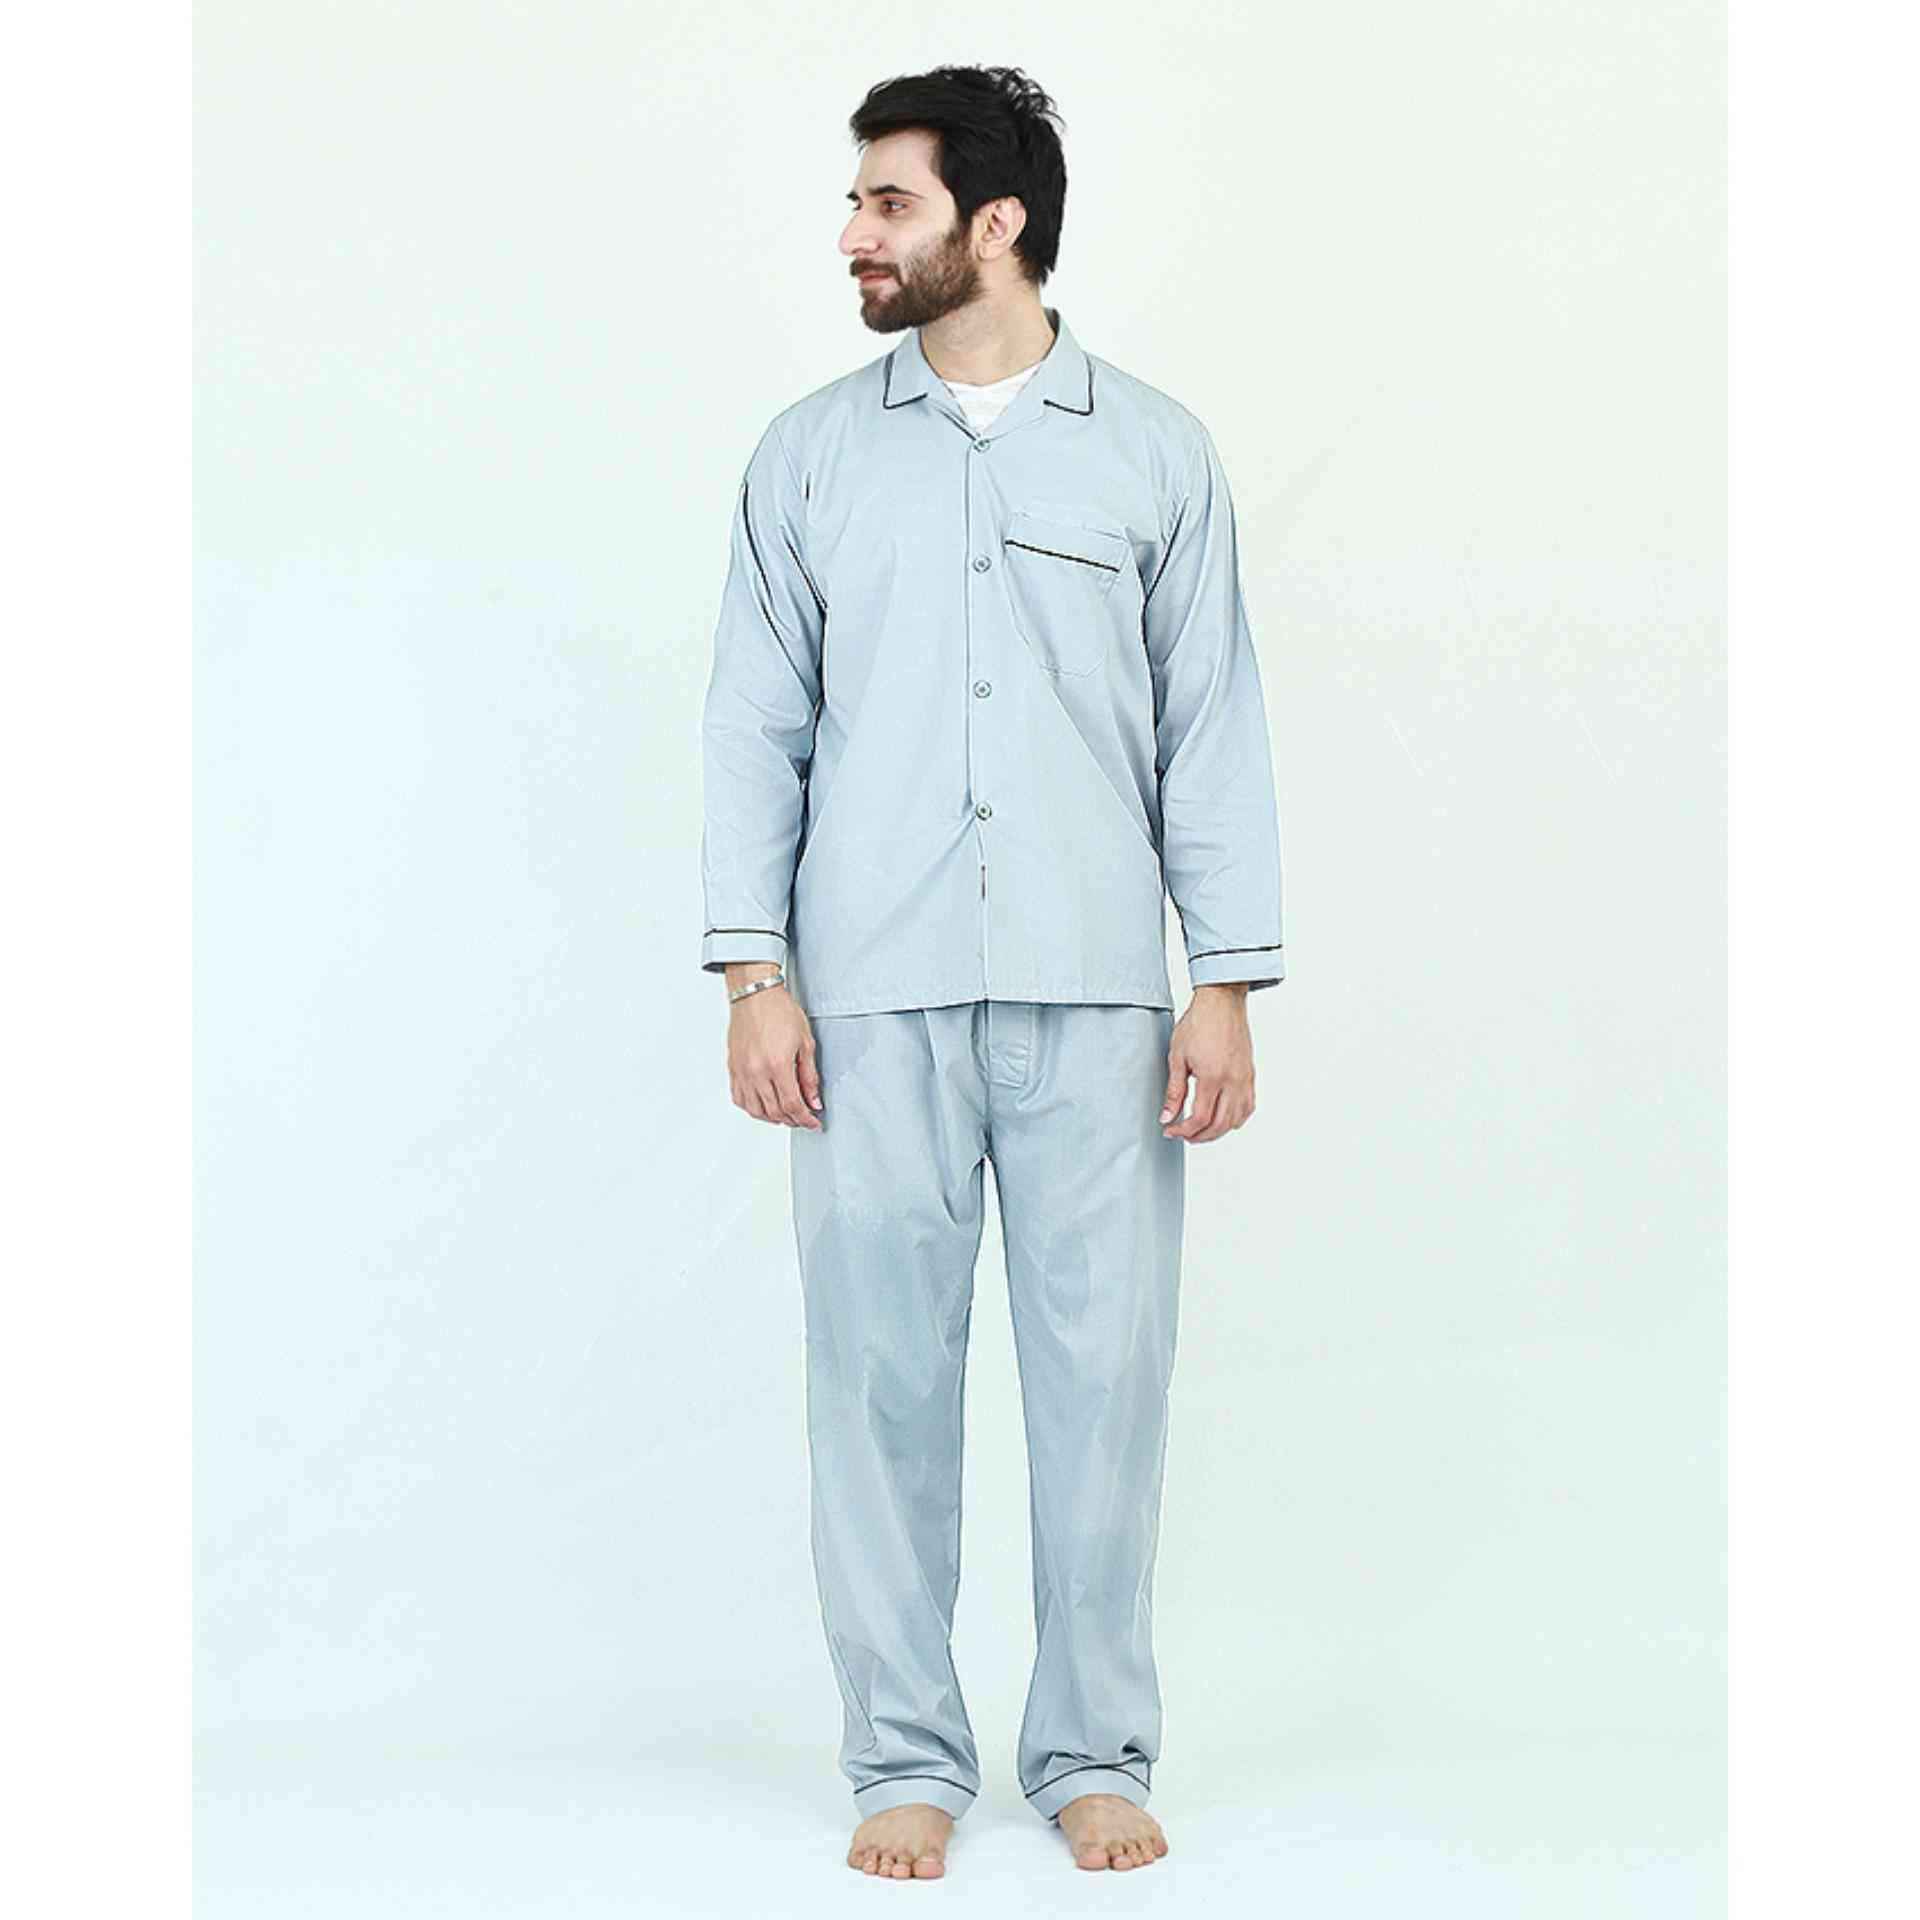 Pack of 2 Cotton Polyester Night Suit (Pajama + Shirt) for Men - Green